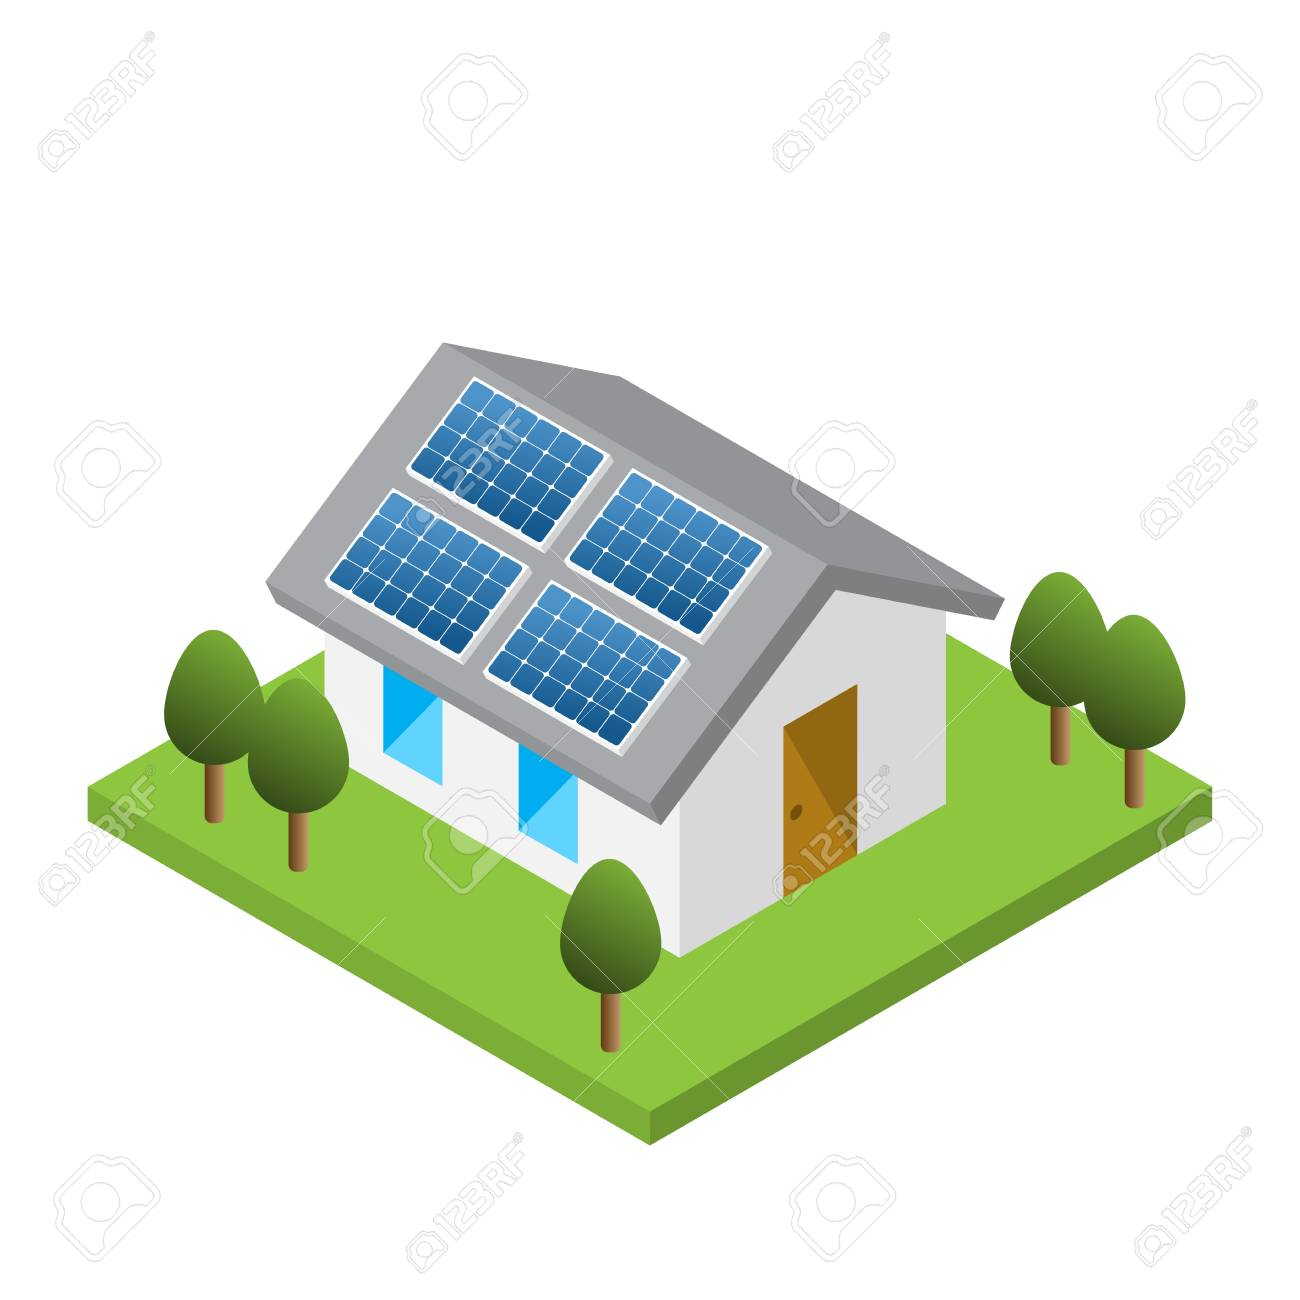 Simple isometric house with solar roof panels, isolated white background - 97223543